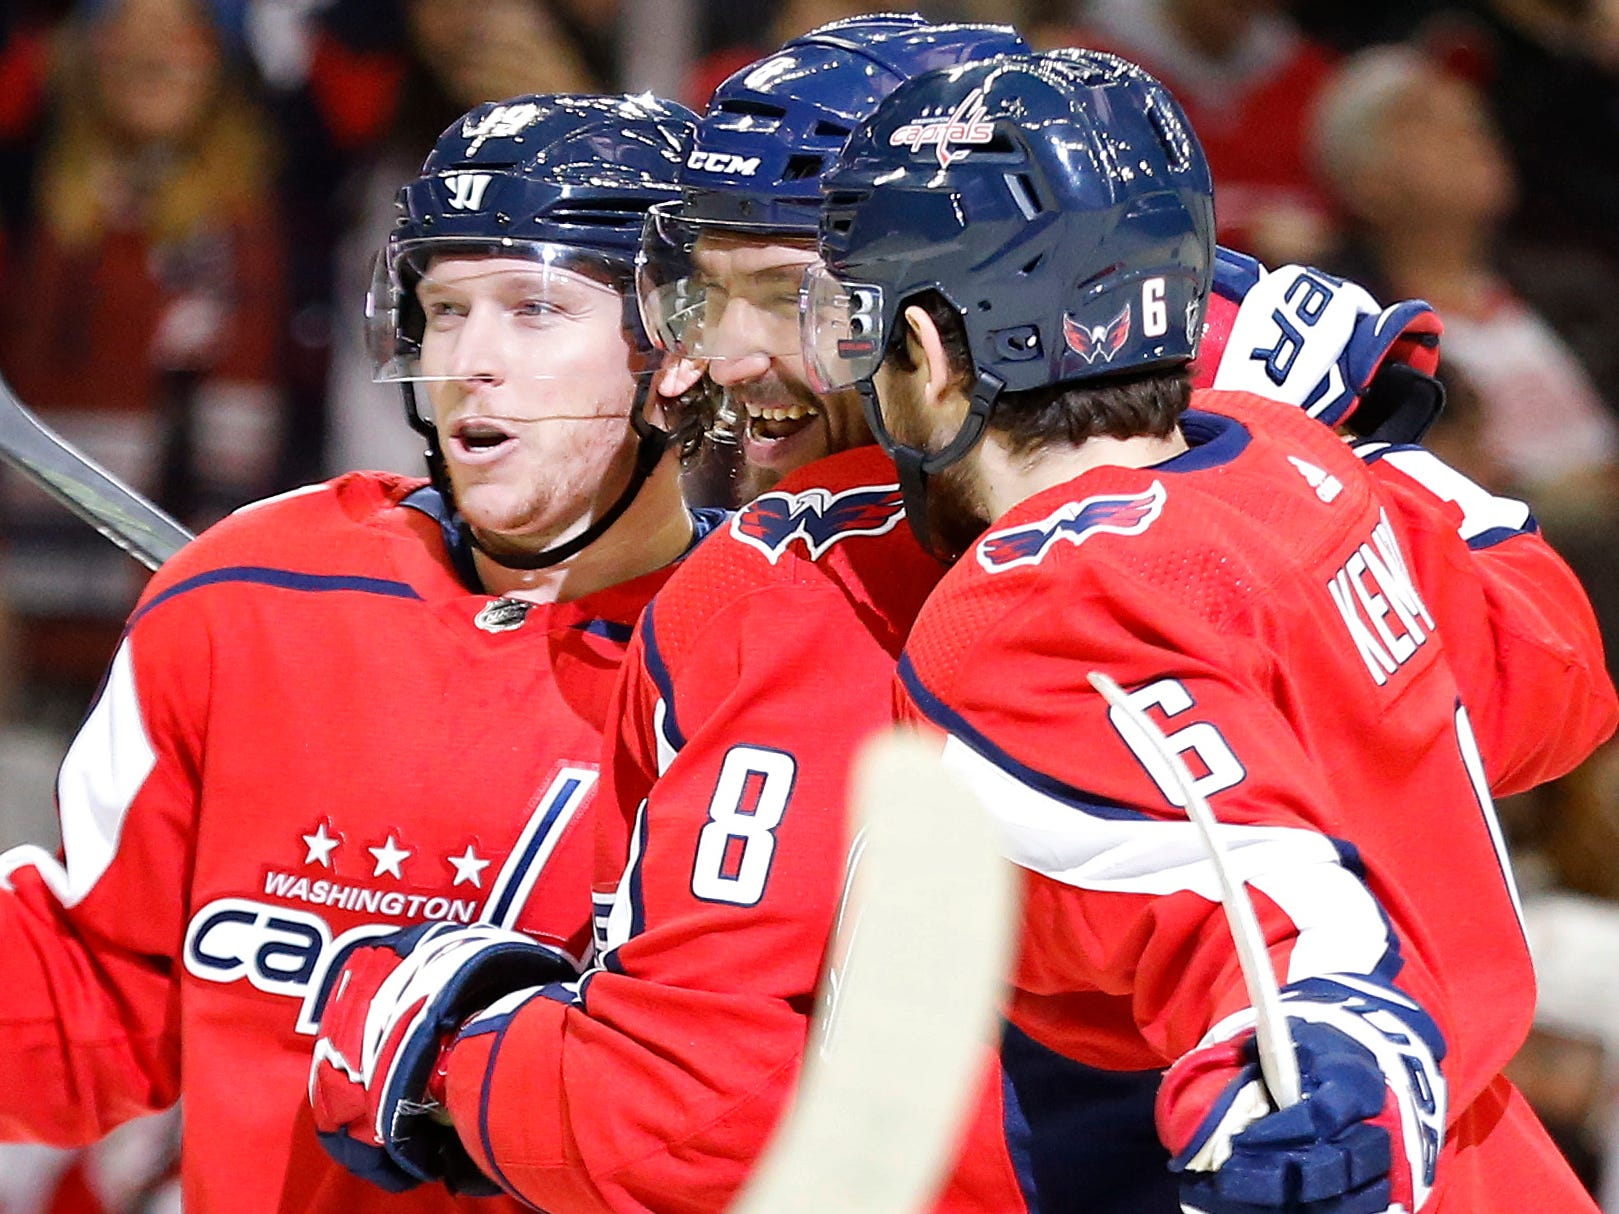 Dec. 11: Washington Capitals left wing Alex Ovechkin (8) is all smiles after scoring against the Detroit Red Wings. He recorded his 21st career hat trick in the 6-2 victory.